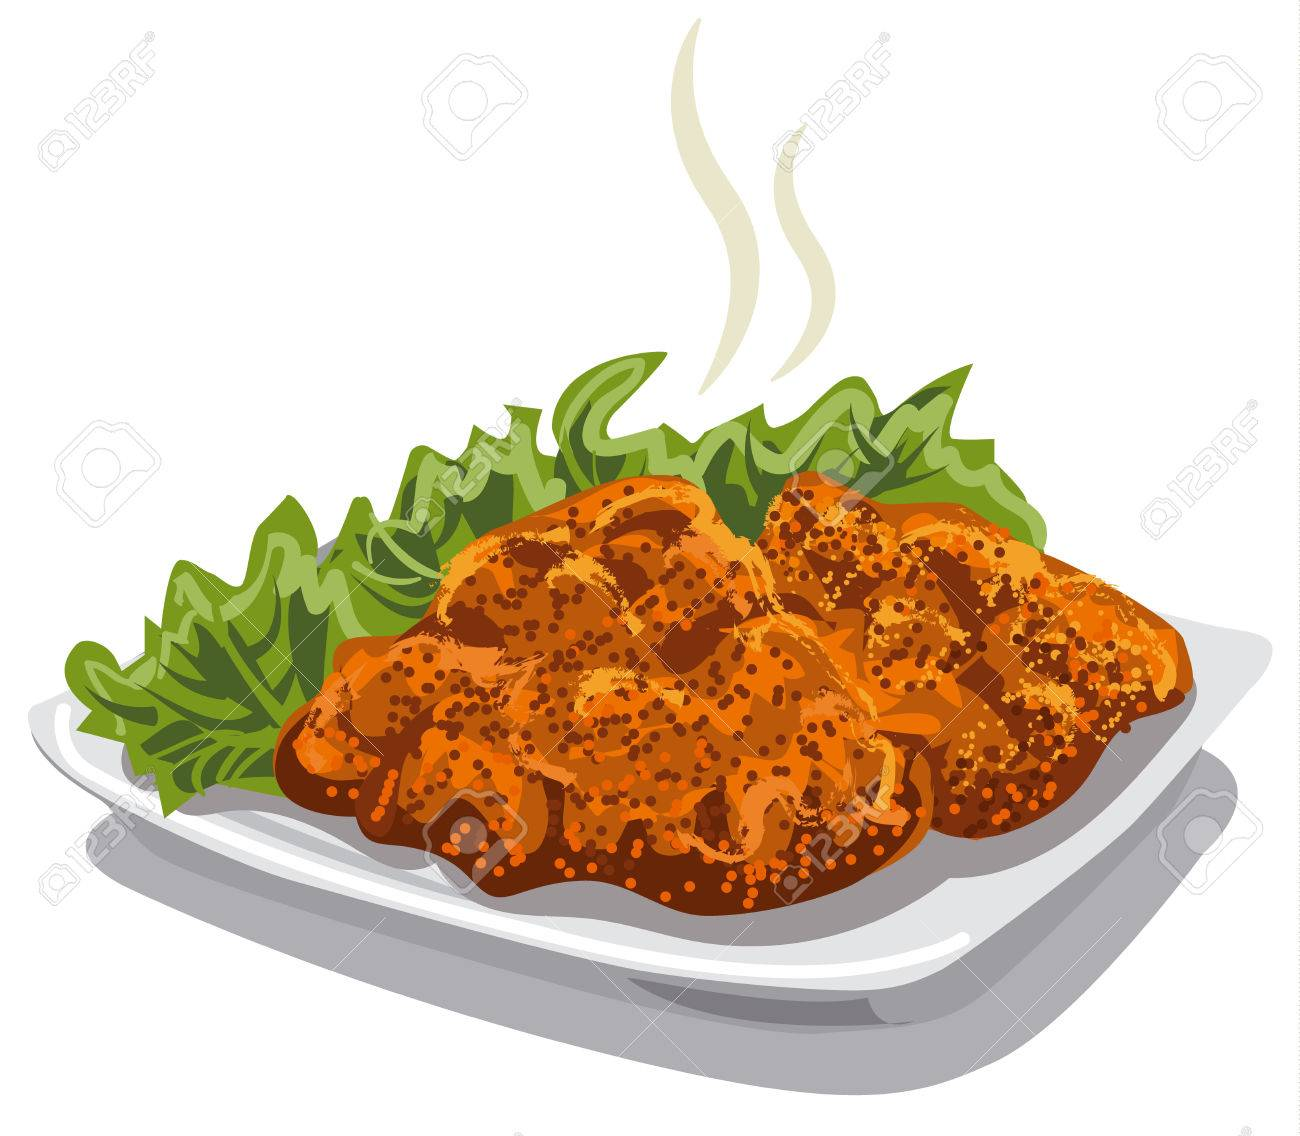 illustration of meat schnitzel with lettuce on plate - 63783350